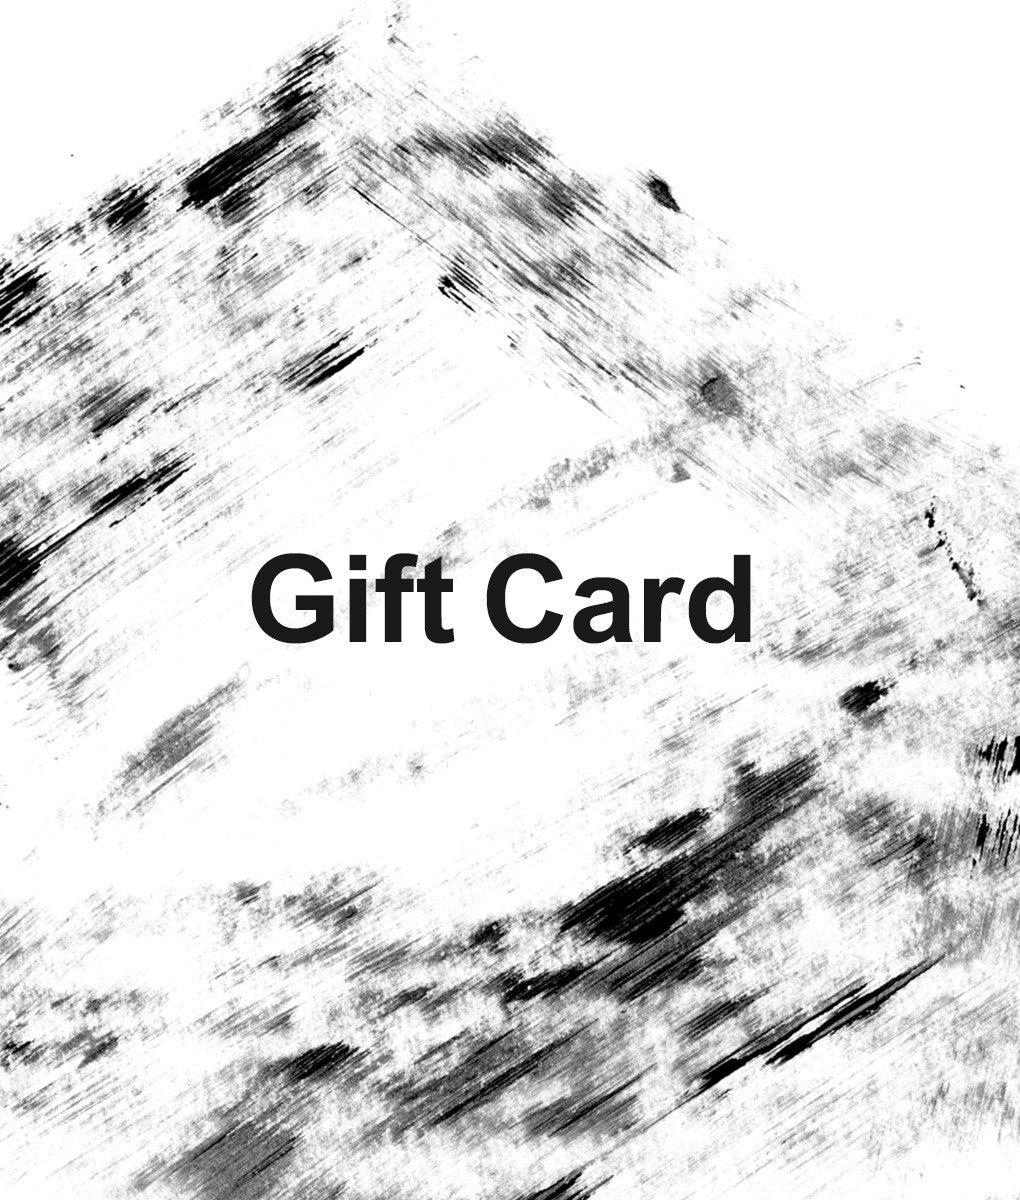 Waldraud gift cards